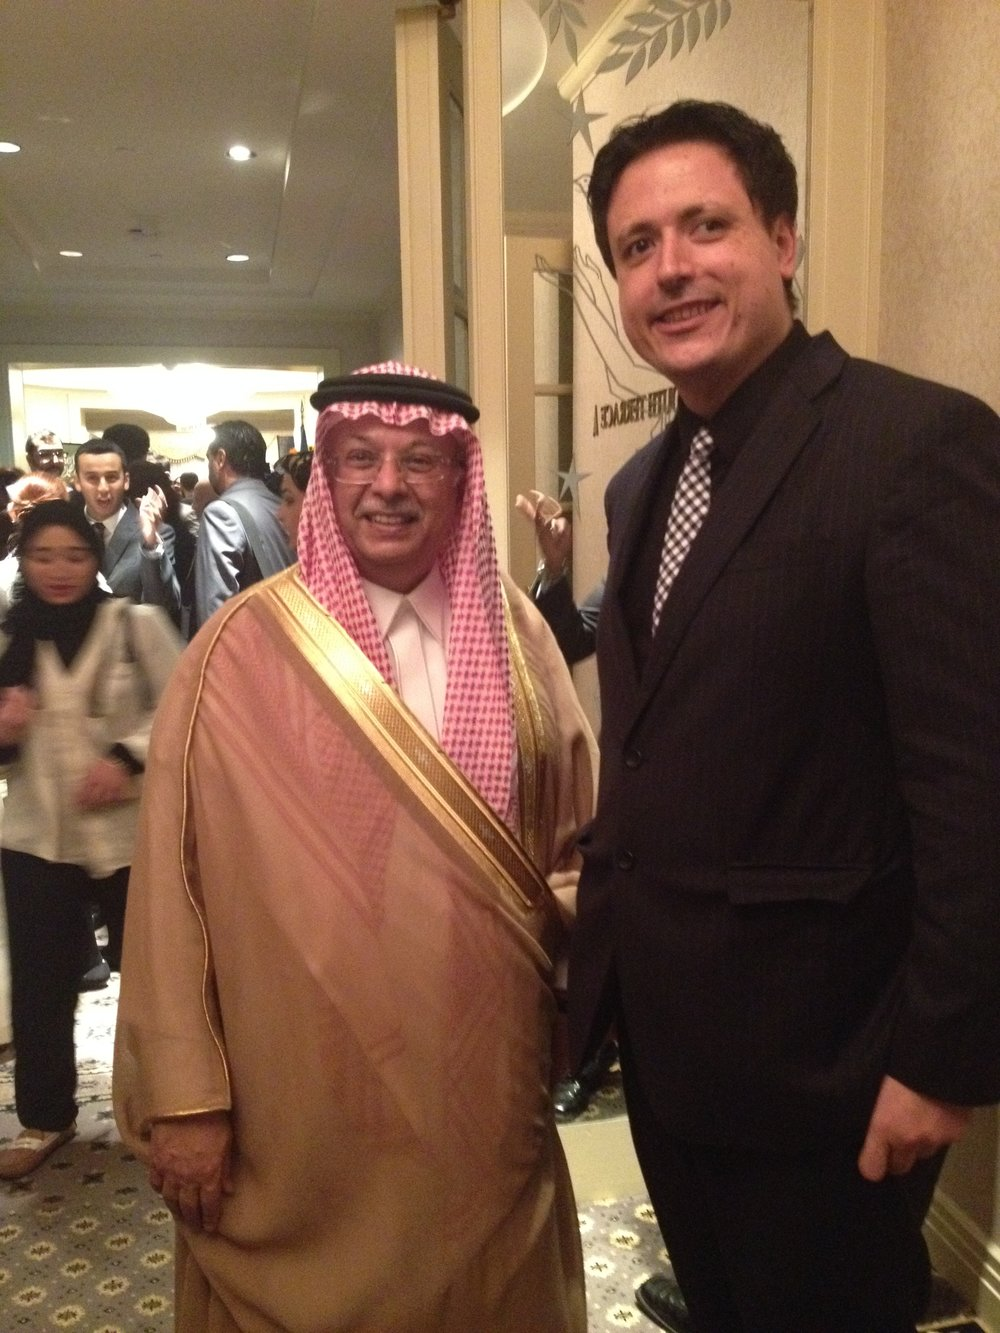 Me with Saudi Arabian Ambassador to the UN, Abdallah bin Yahya Al-Mouallimi.